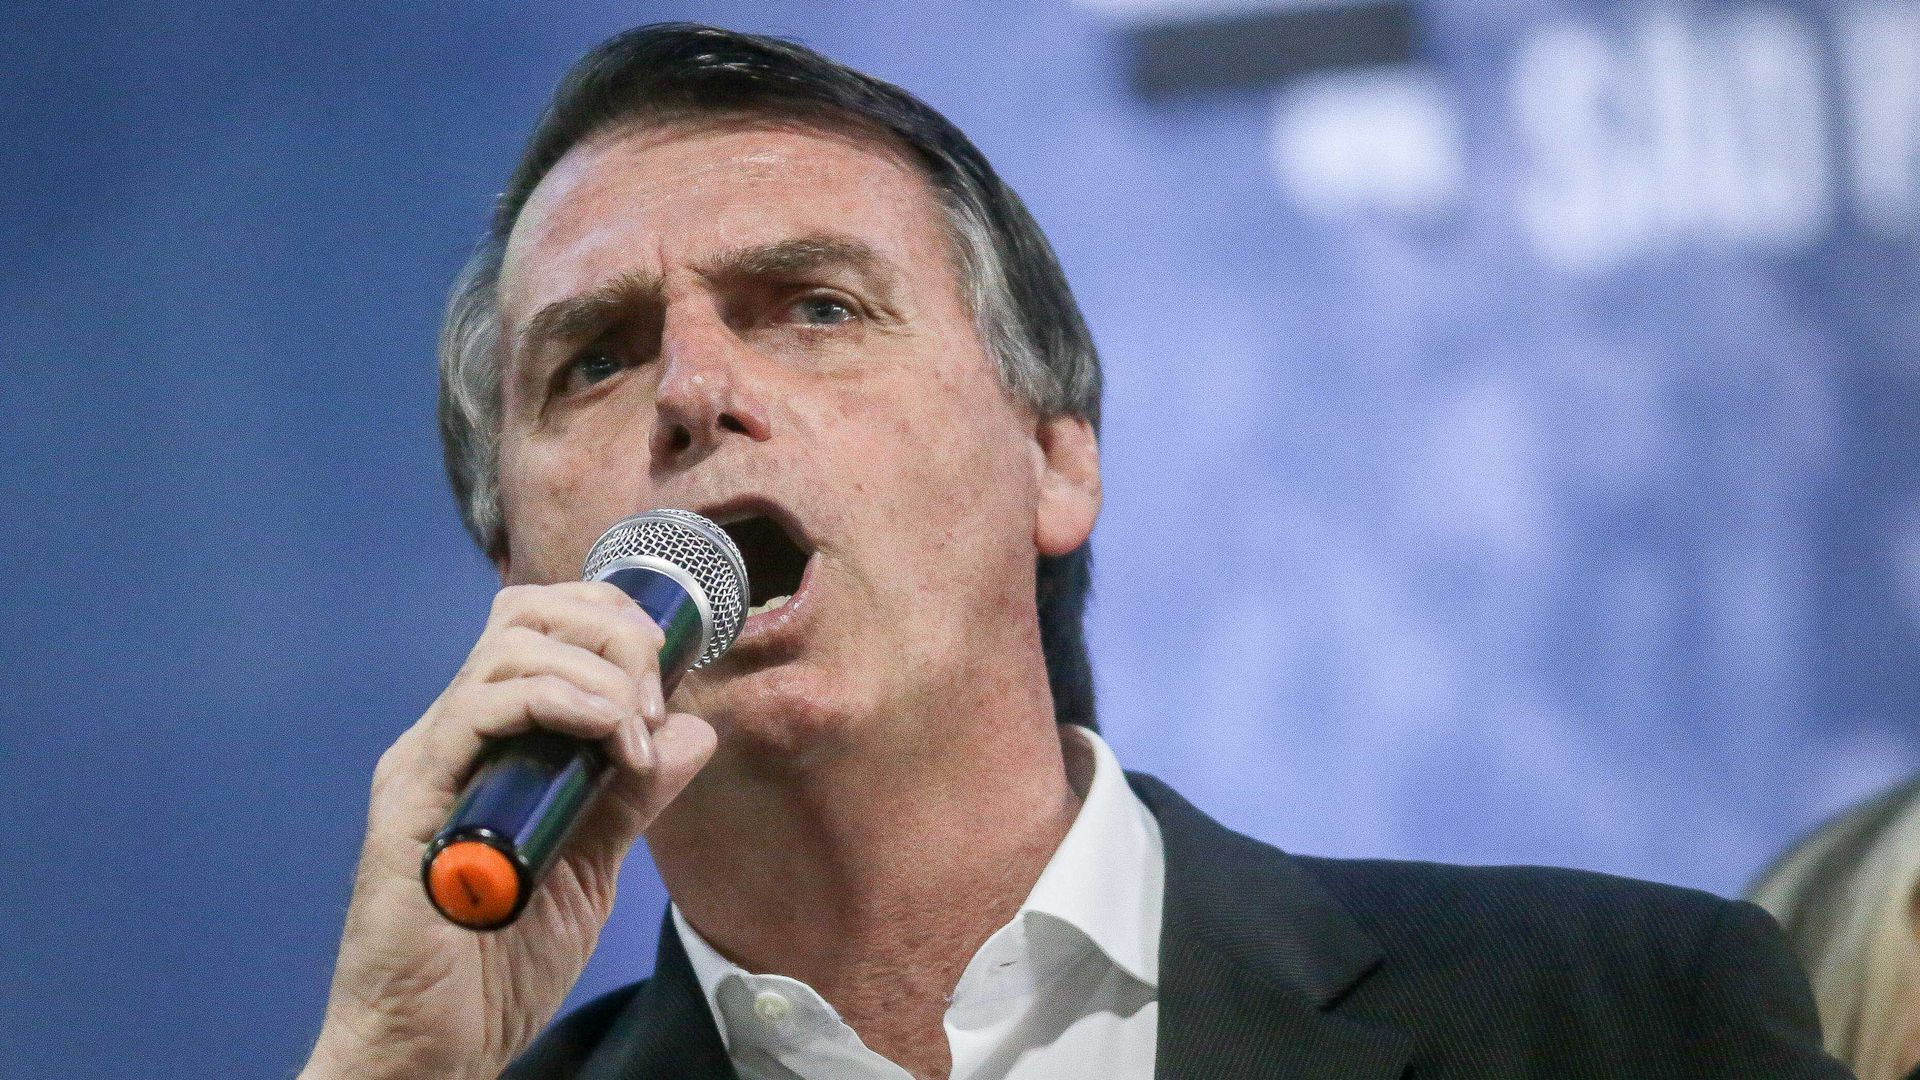 Jair Bolsonaro, Brazilian presidential candidate for the Social Liberal Party, during his political party in Sao Paulo, Brazil, on August 5, 2018.